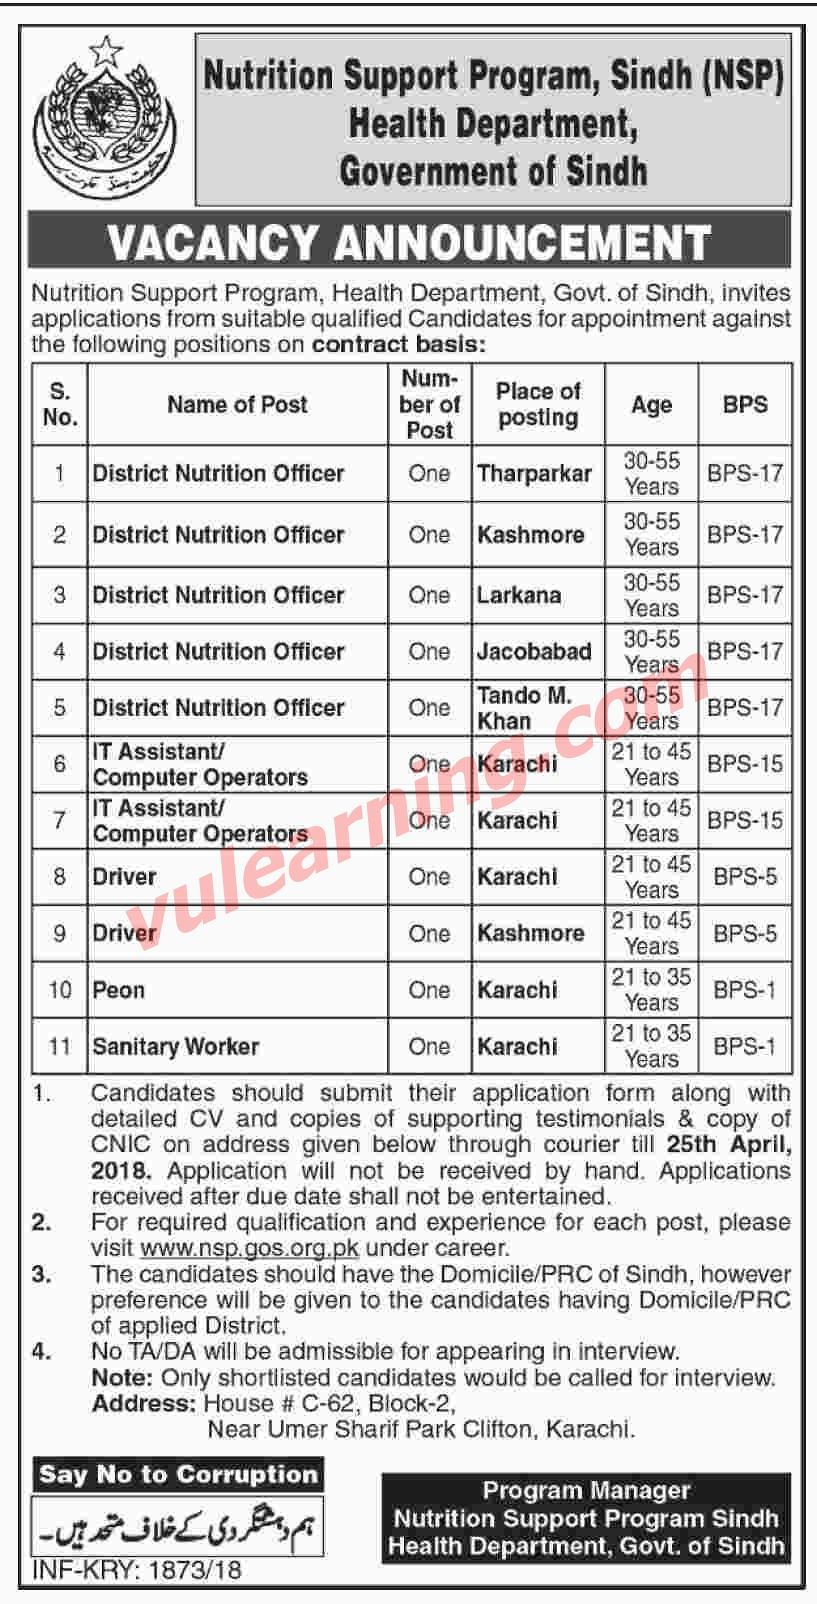 Health Department Govt of Sindh Jobs 2018 for Nutrition